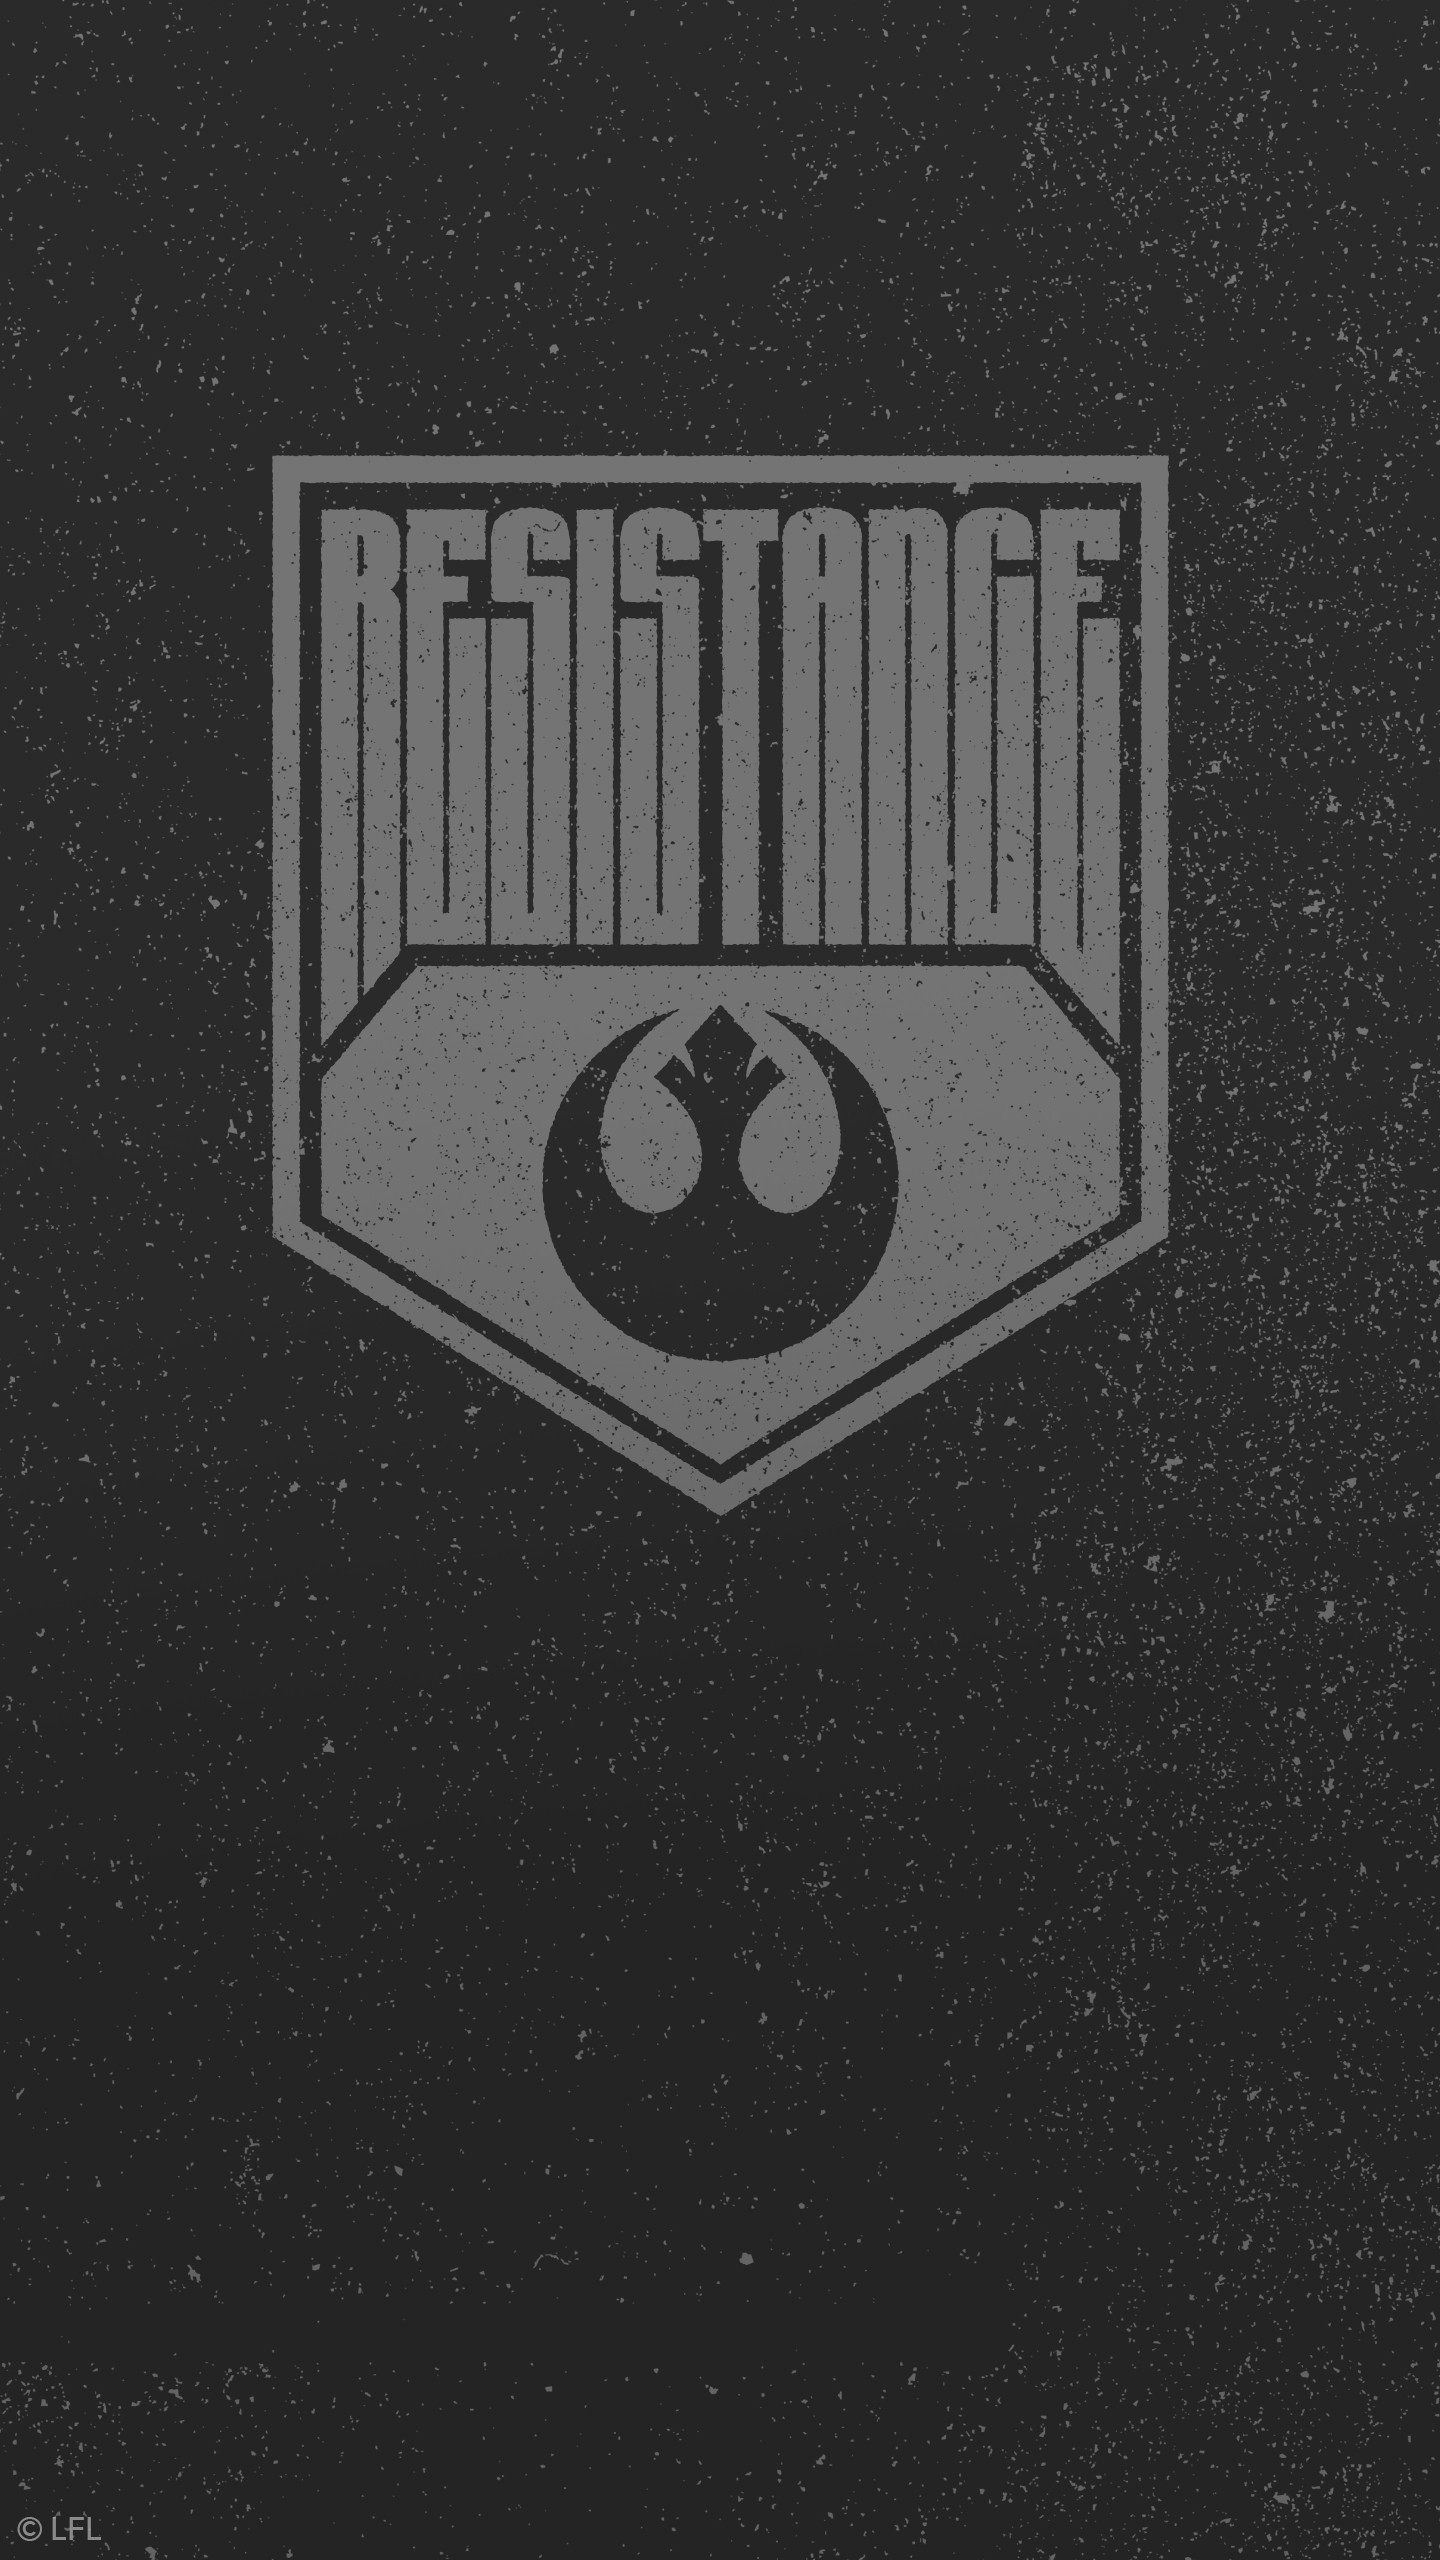 resistance · star wars. local_offer Android Wallpaper Star Wars